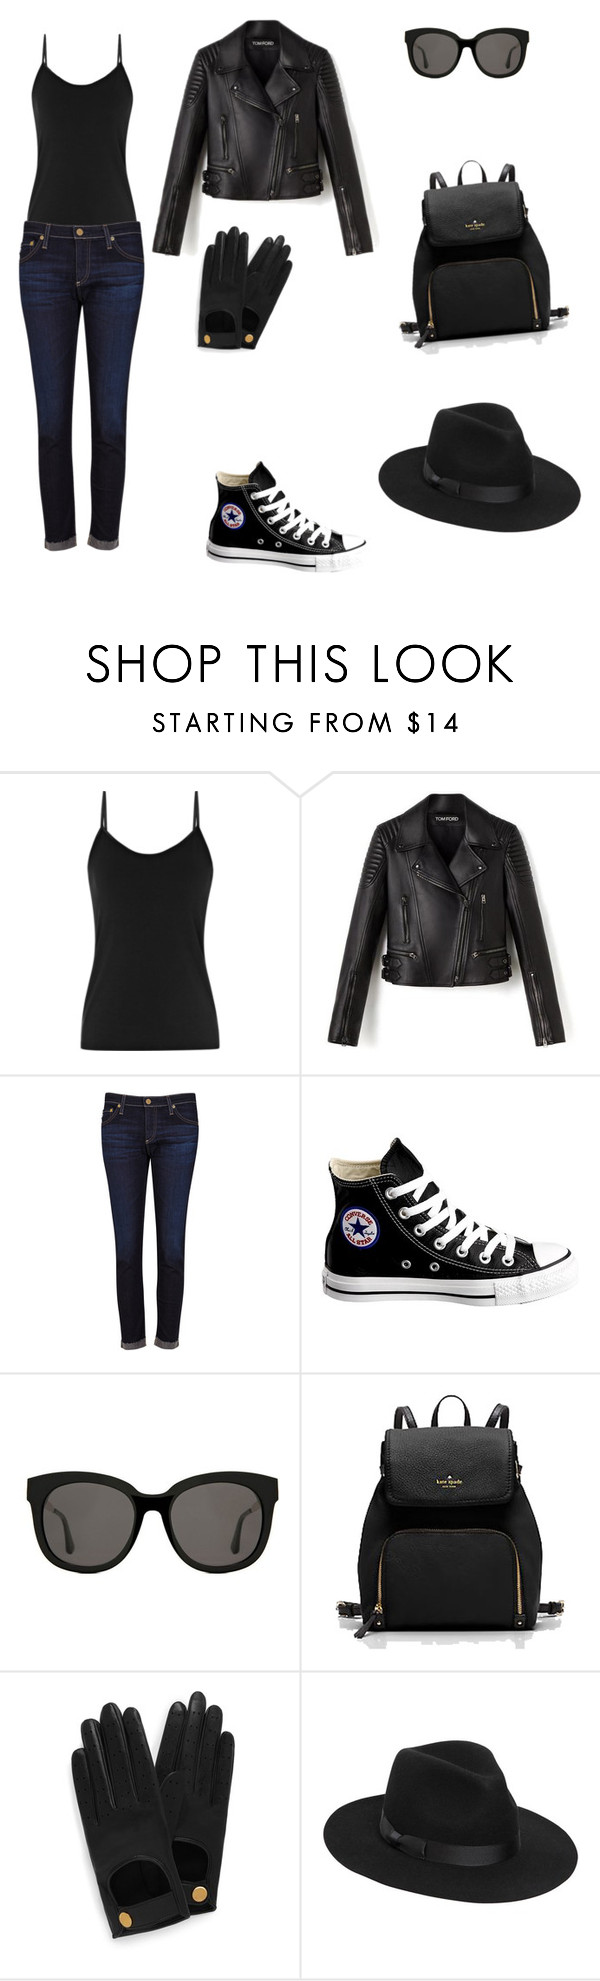 """Untitled #1"" by connerclankids ❤ liked on Polyvore featuring AG Adriano Goldschmied, Converse, Gentle Monster, Mulberry and Lack of Color"